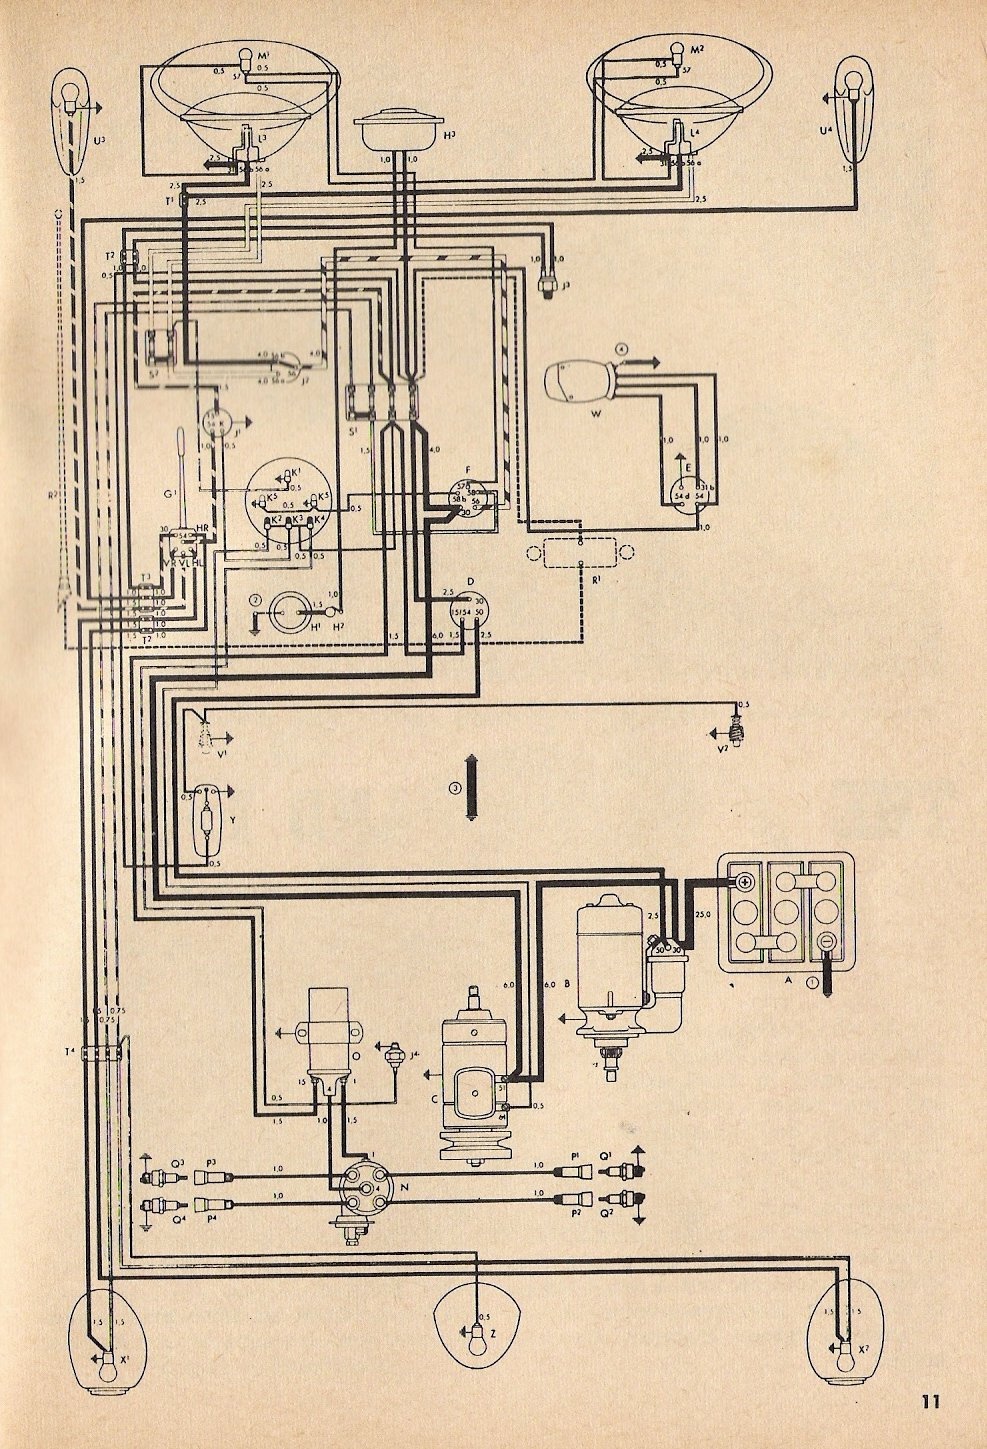 bug_toaug57 1957 beetle wiring diagram thegoldenbug com 1957 vw bug wiring diagram at edmiracle.co